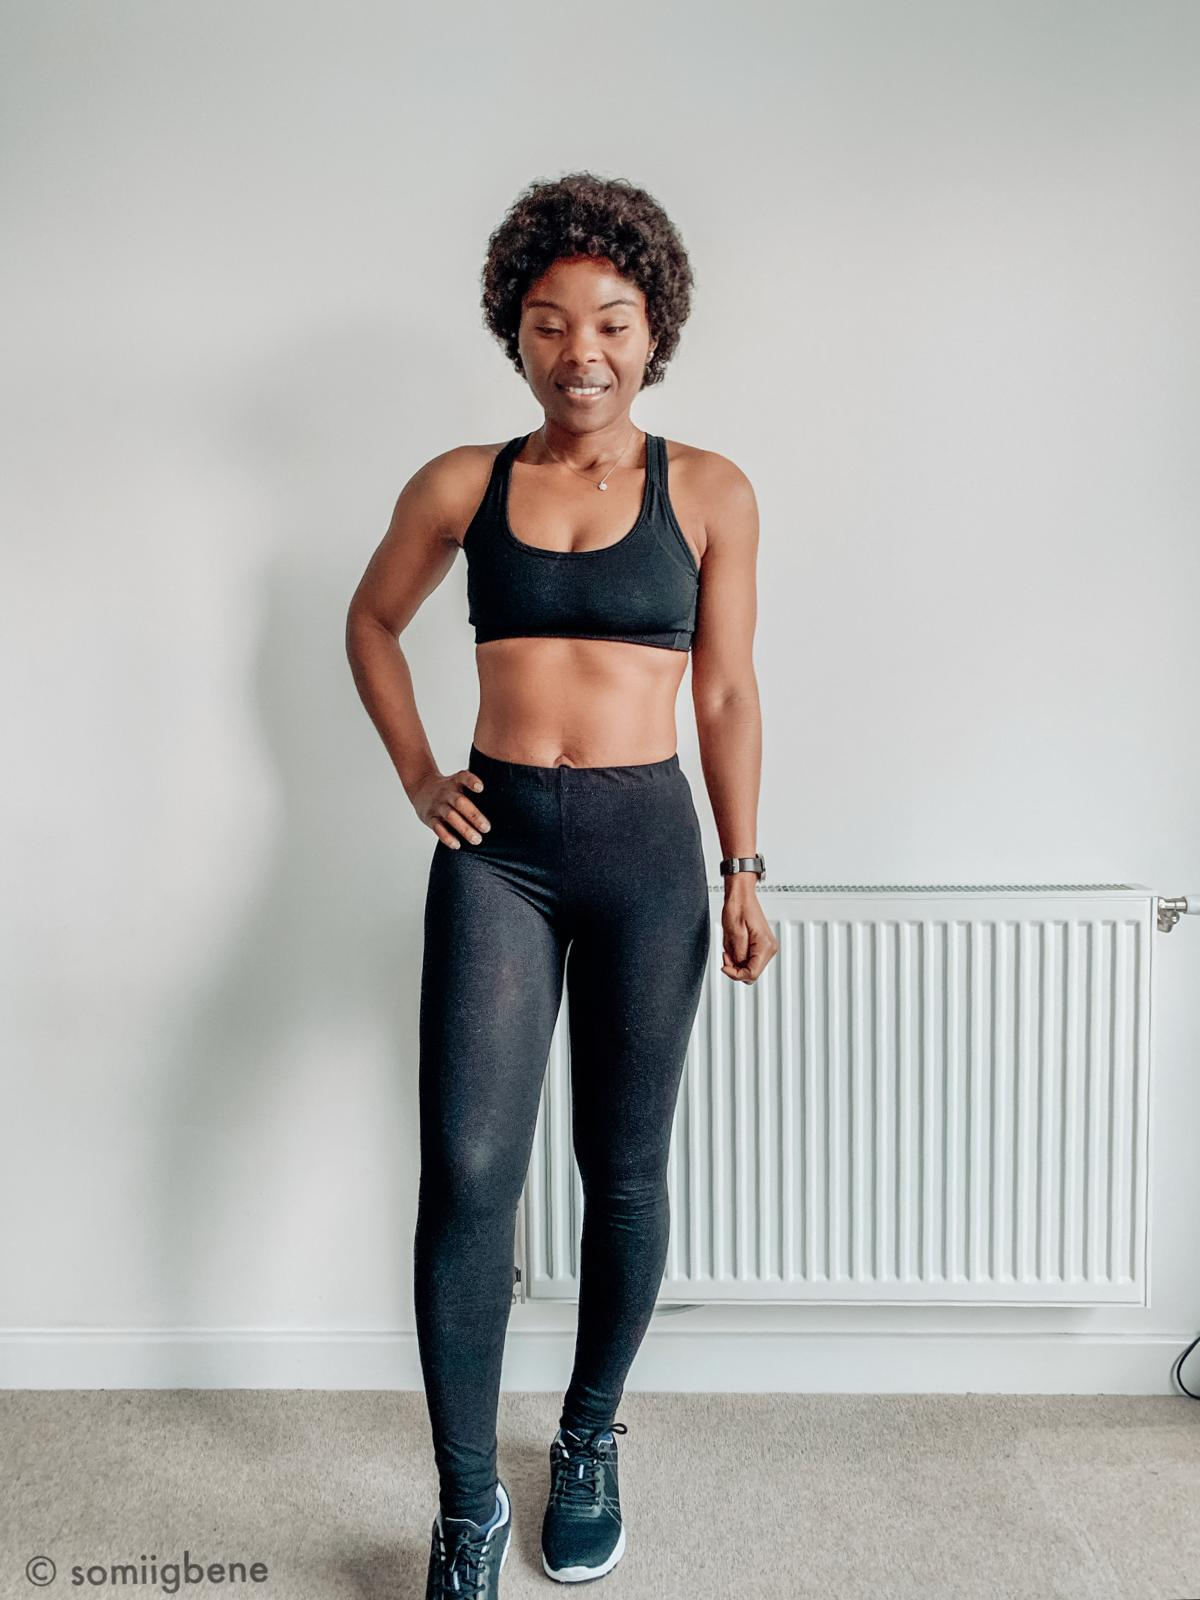 How I finally incorporated exercise into my daily routine